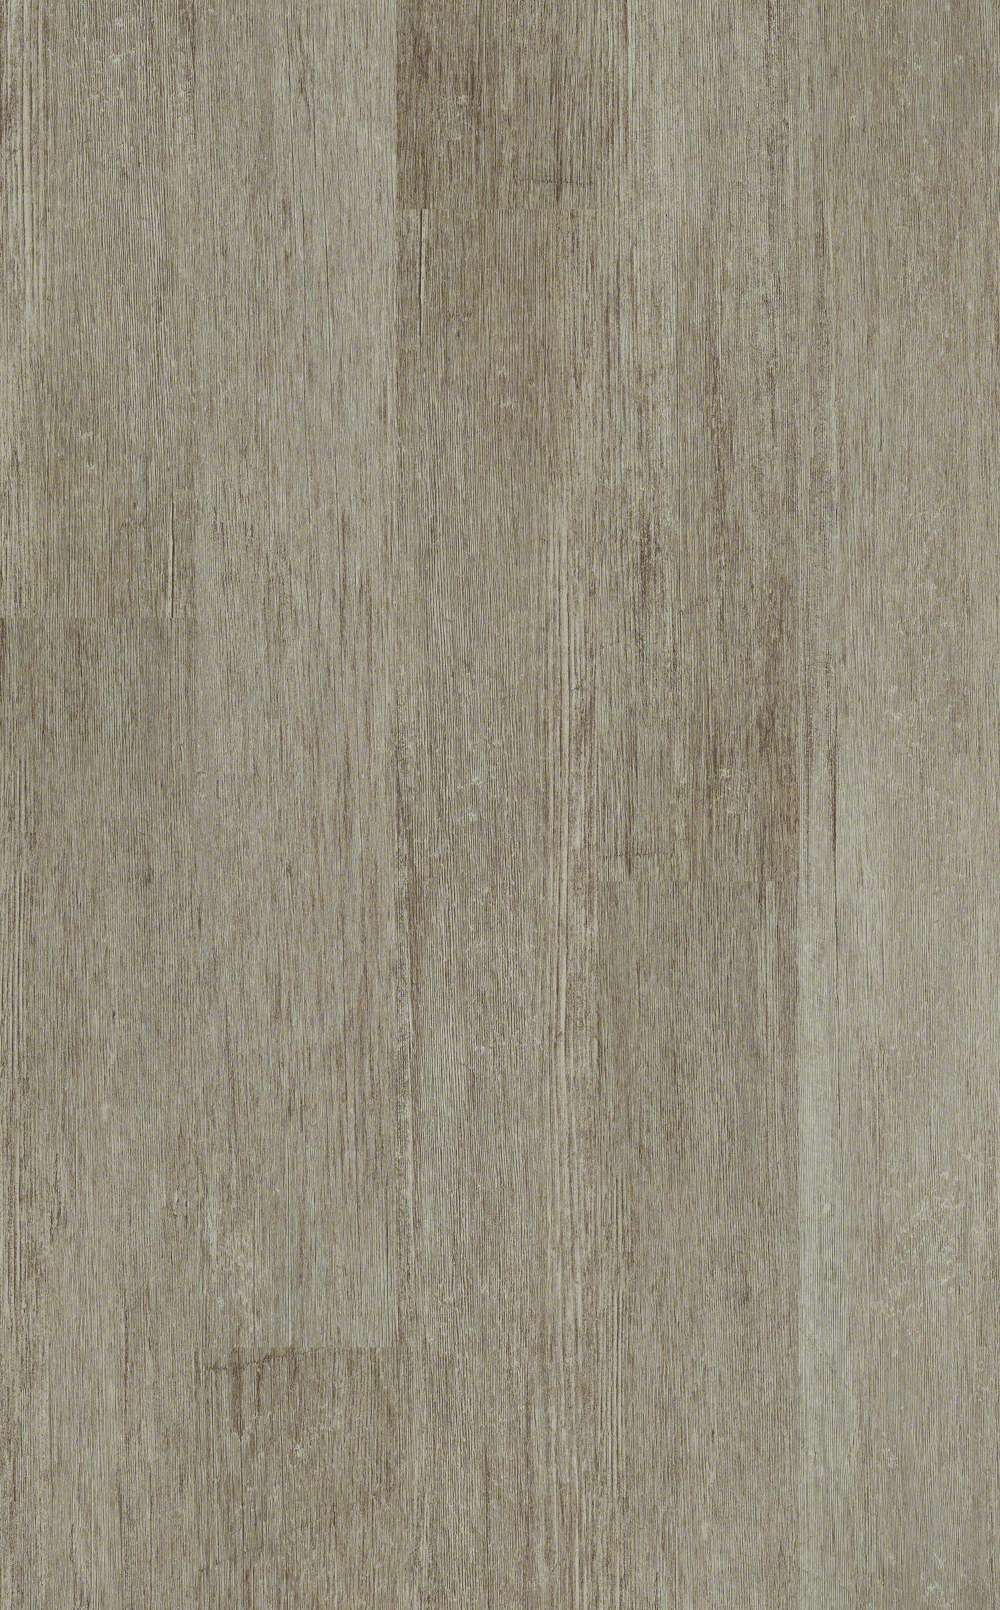 "Shaw - Elba  Width: 5.90""  Length: 48.03""  Thickness: 17/64""  Wear Layer: 12 Mil."